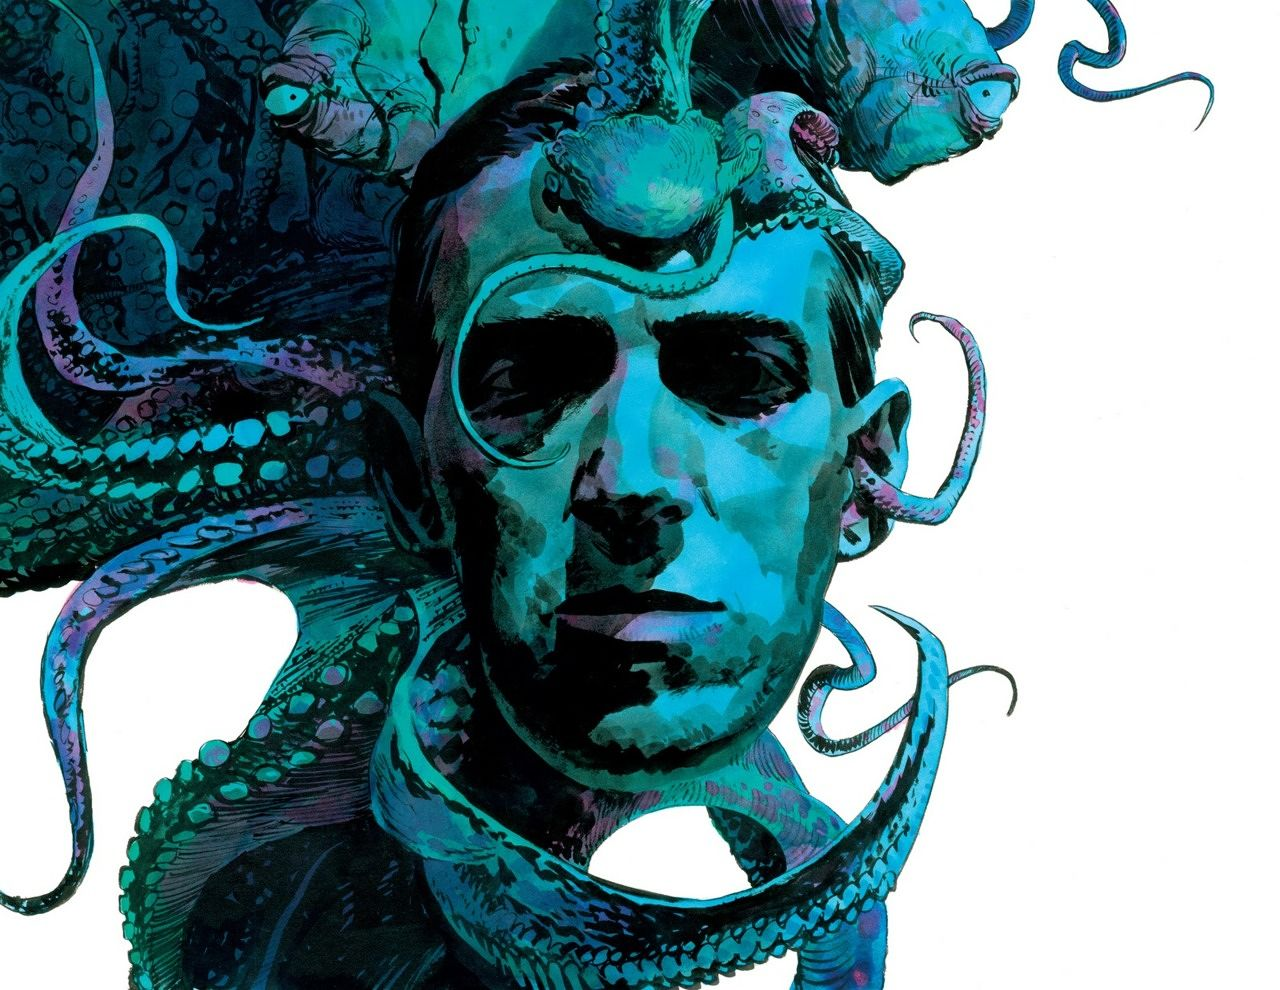 hp lovecraft - 10 Songs That Were Influenced by H.P. Lovecraft